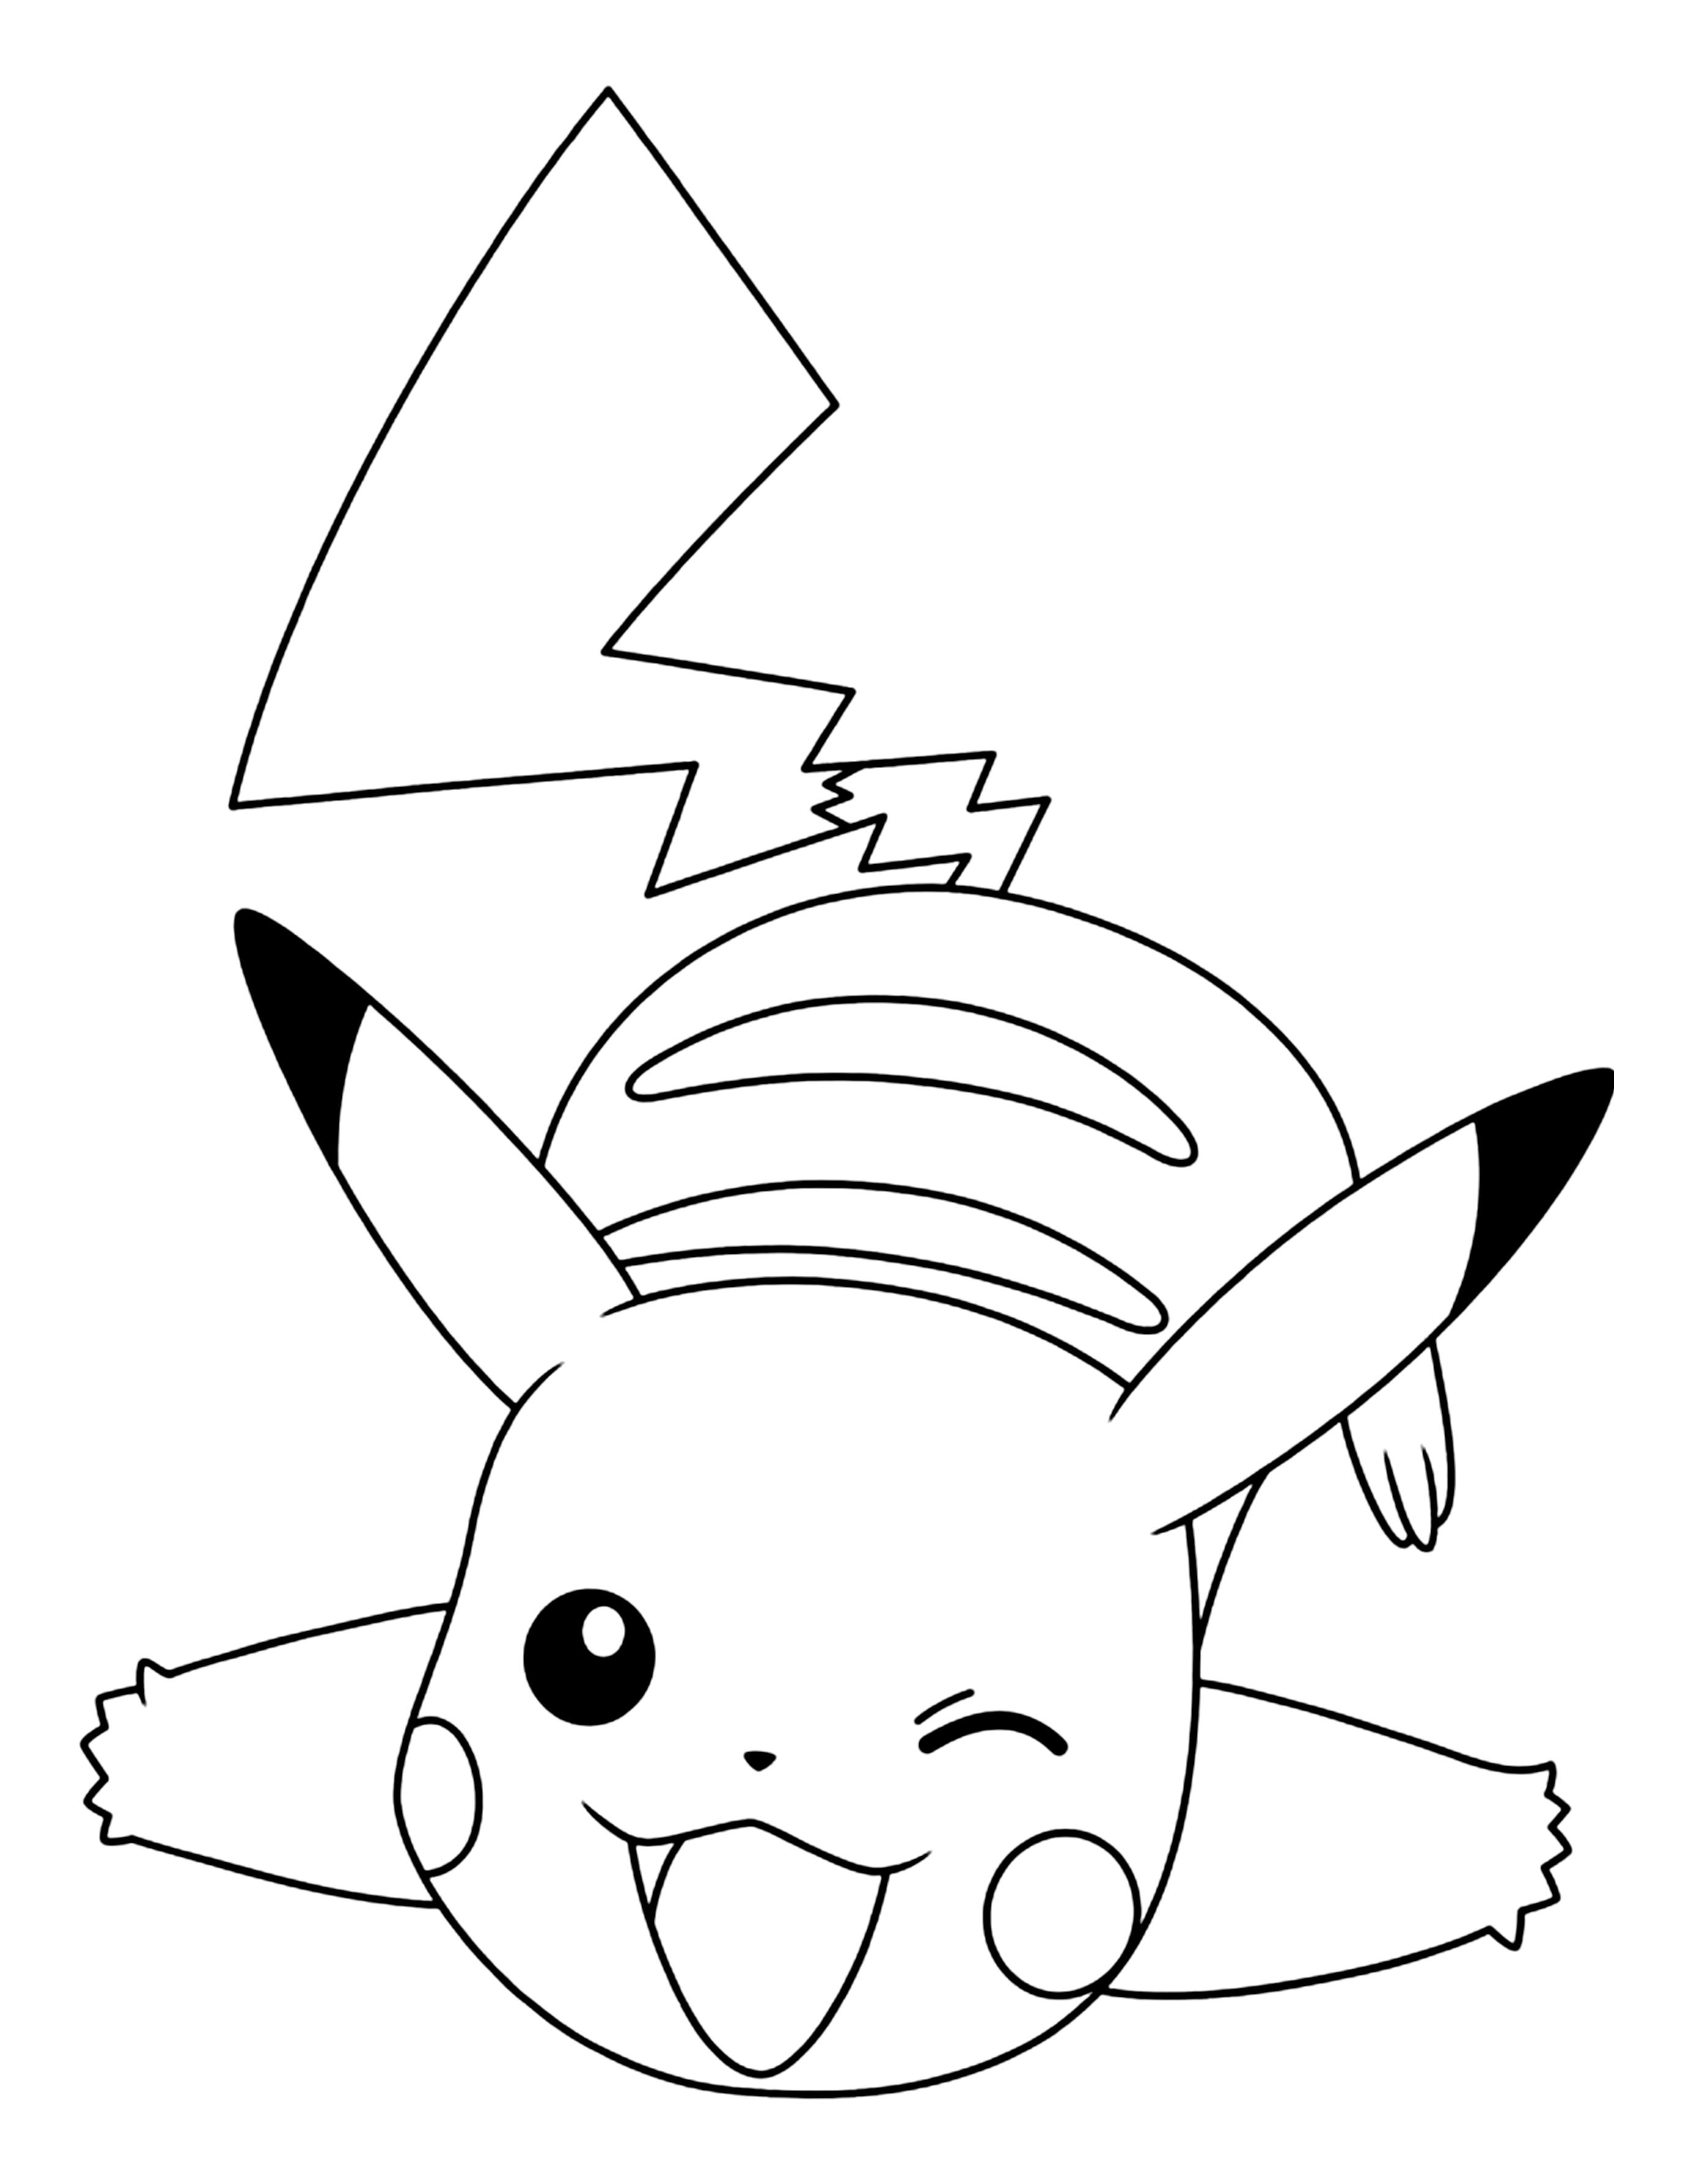 Easy Pokemon Coloring Pages : pokemon, coloring, pages, Pokemon, Coloring, Pages, Coloring,, Pages,, Sheets